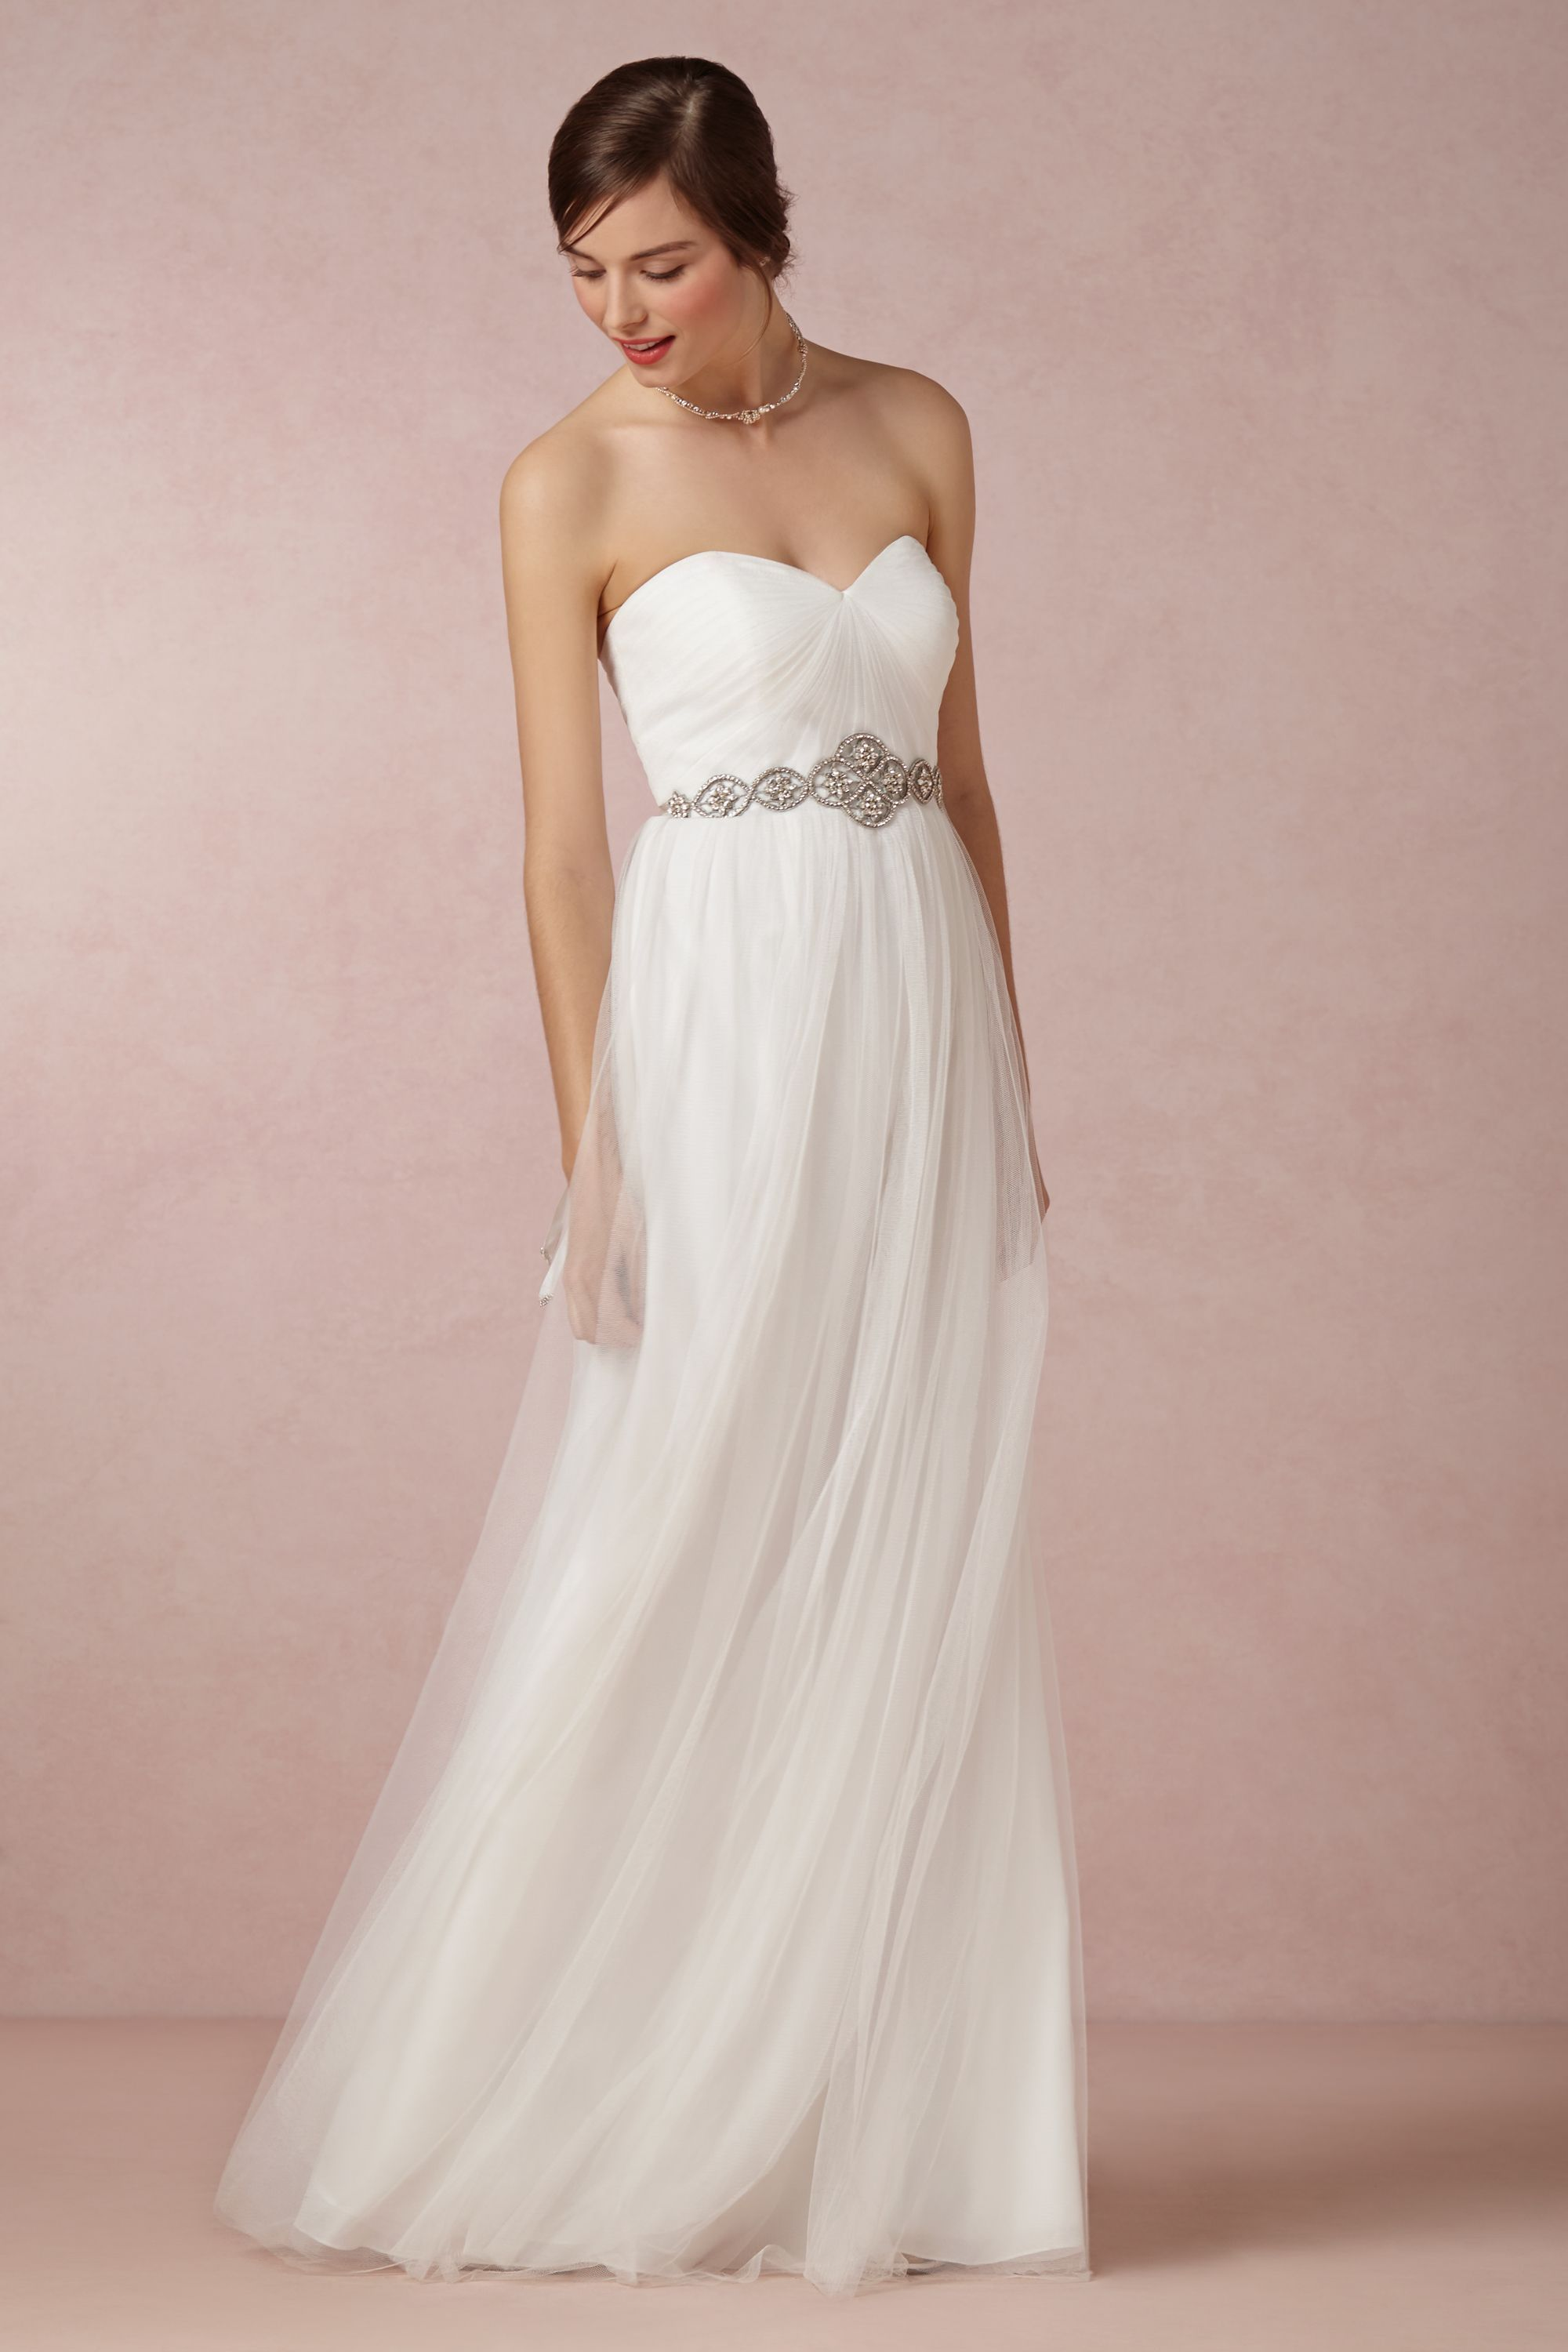 Annabelle Dress From Bhldn Available In 8 Diffe Colors And Can Be Styled 15